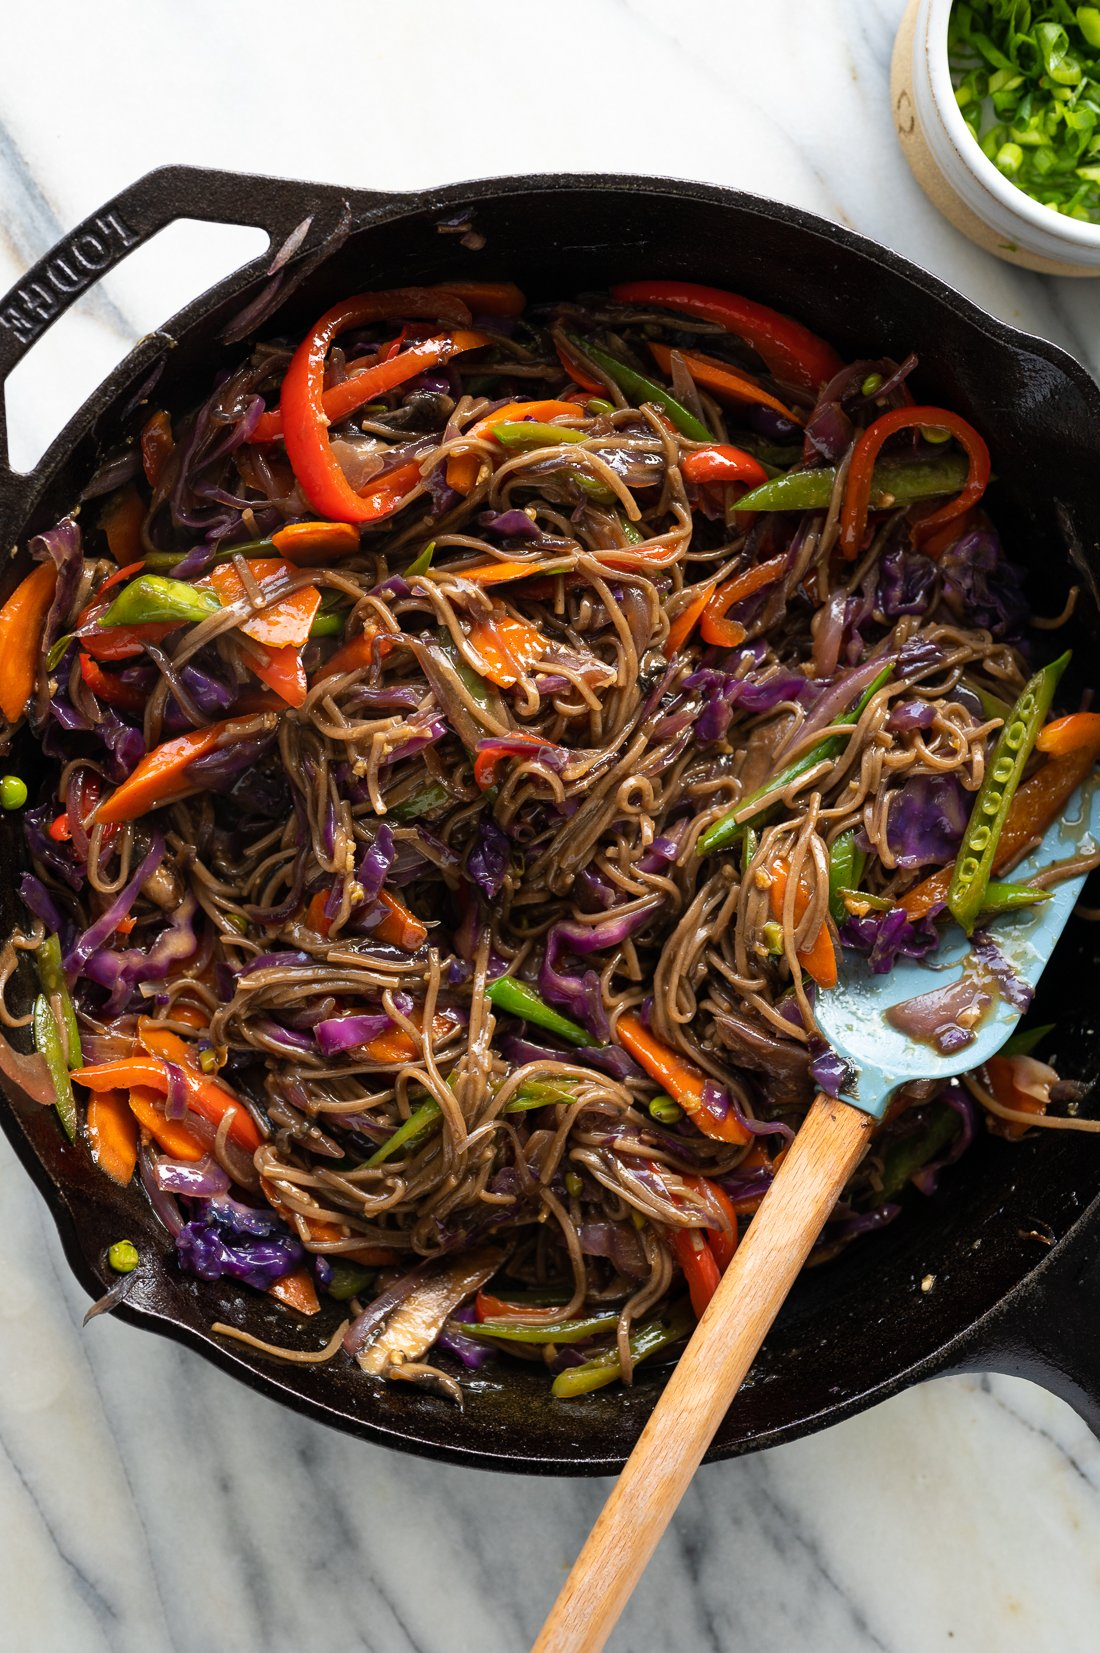 Veggie Teriyaki Stir-Fry with Noodles